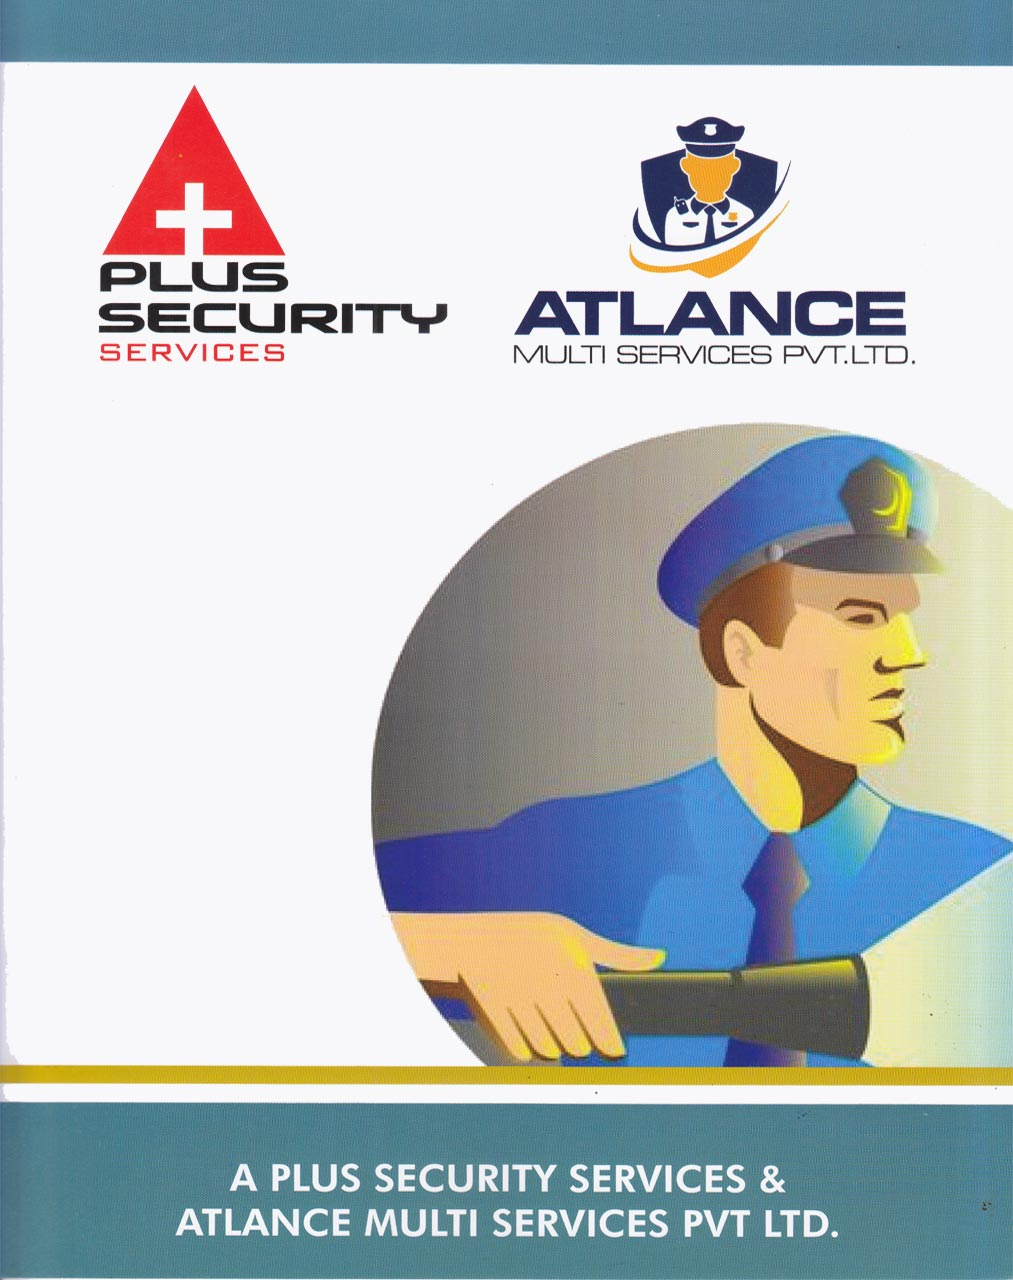 A PLUS SECURITY SERVICES <Br>ATLANCE MULTI SERVICES PVT. LTD.